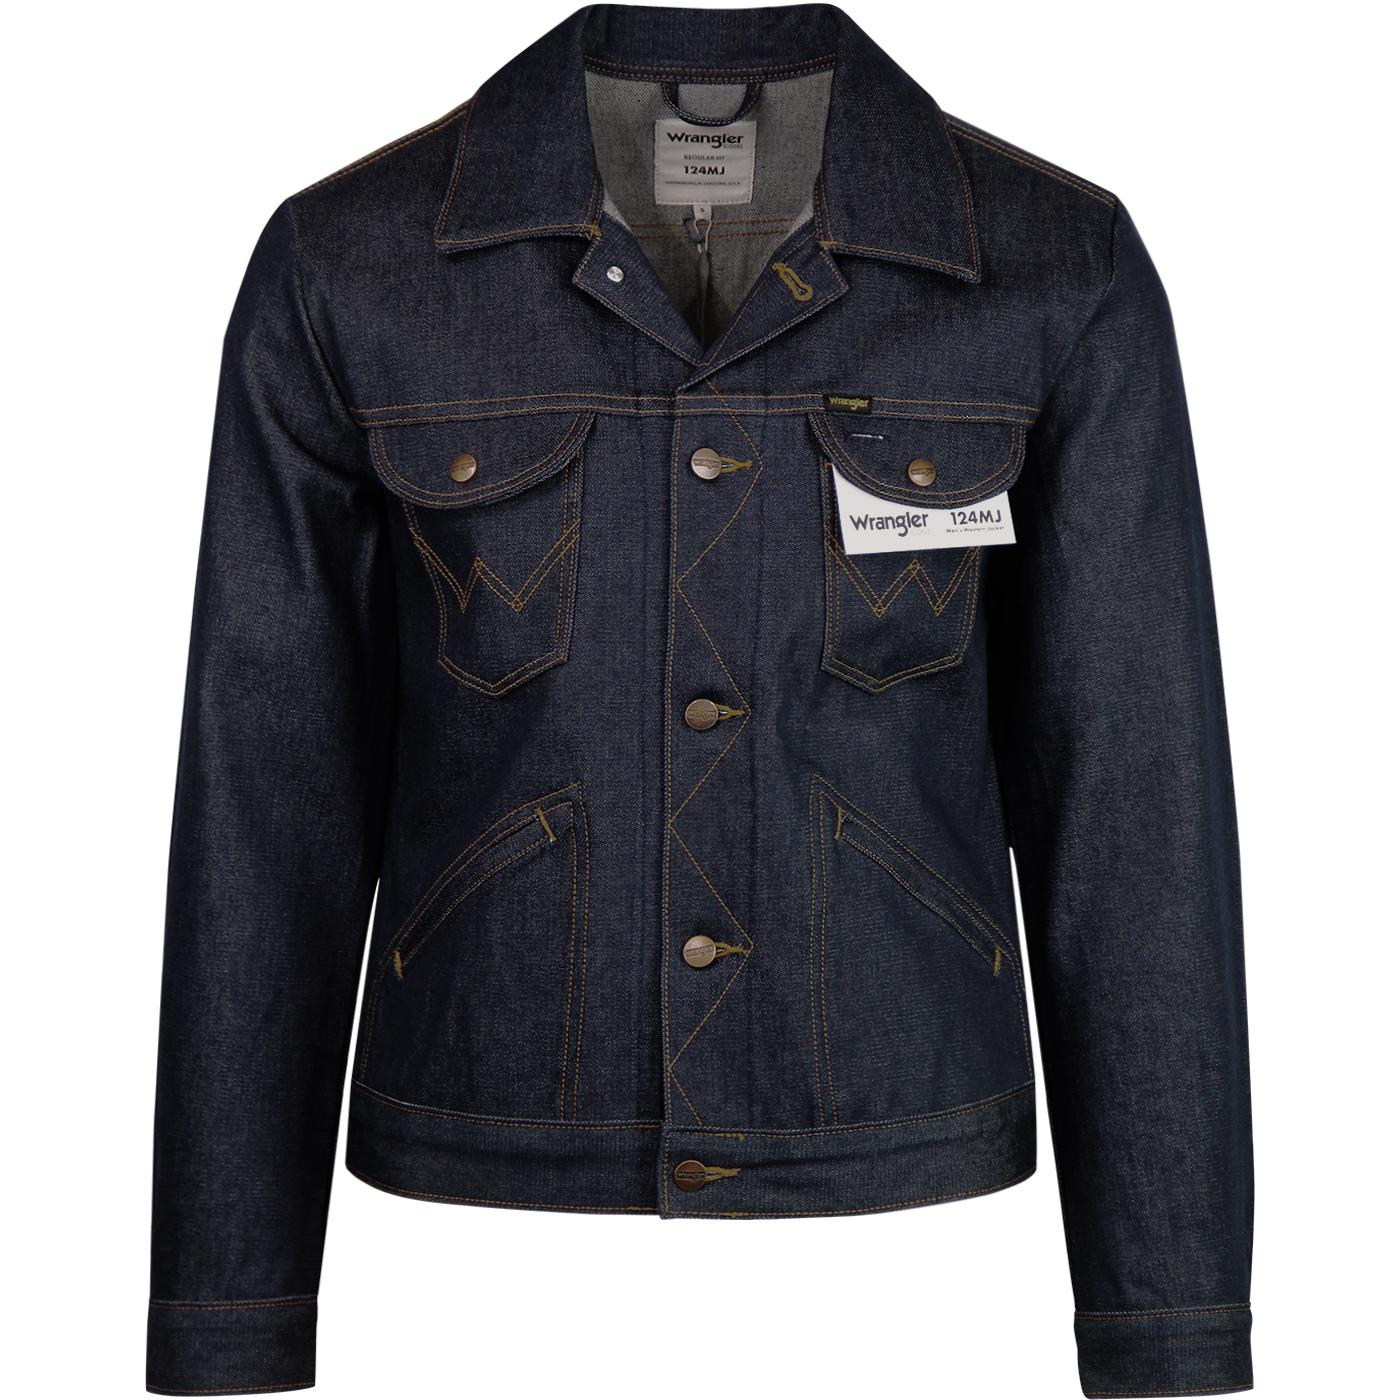 124MJ WRANGLER 60s Mod Men's Denim Western Jacket